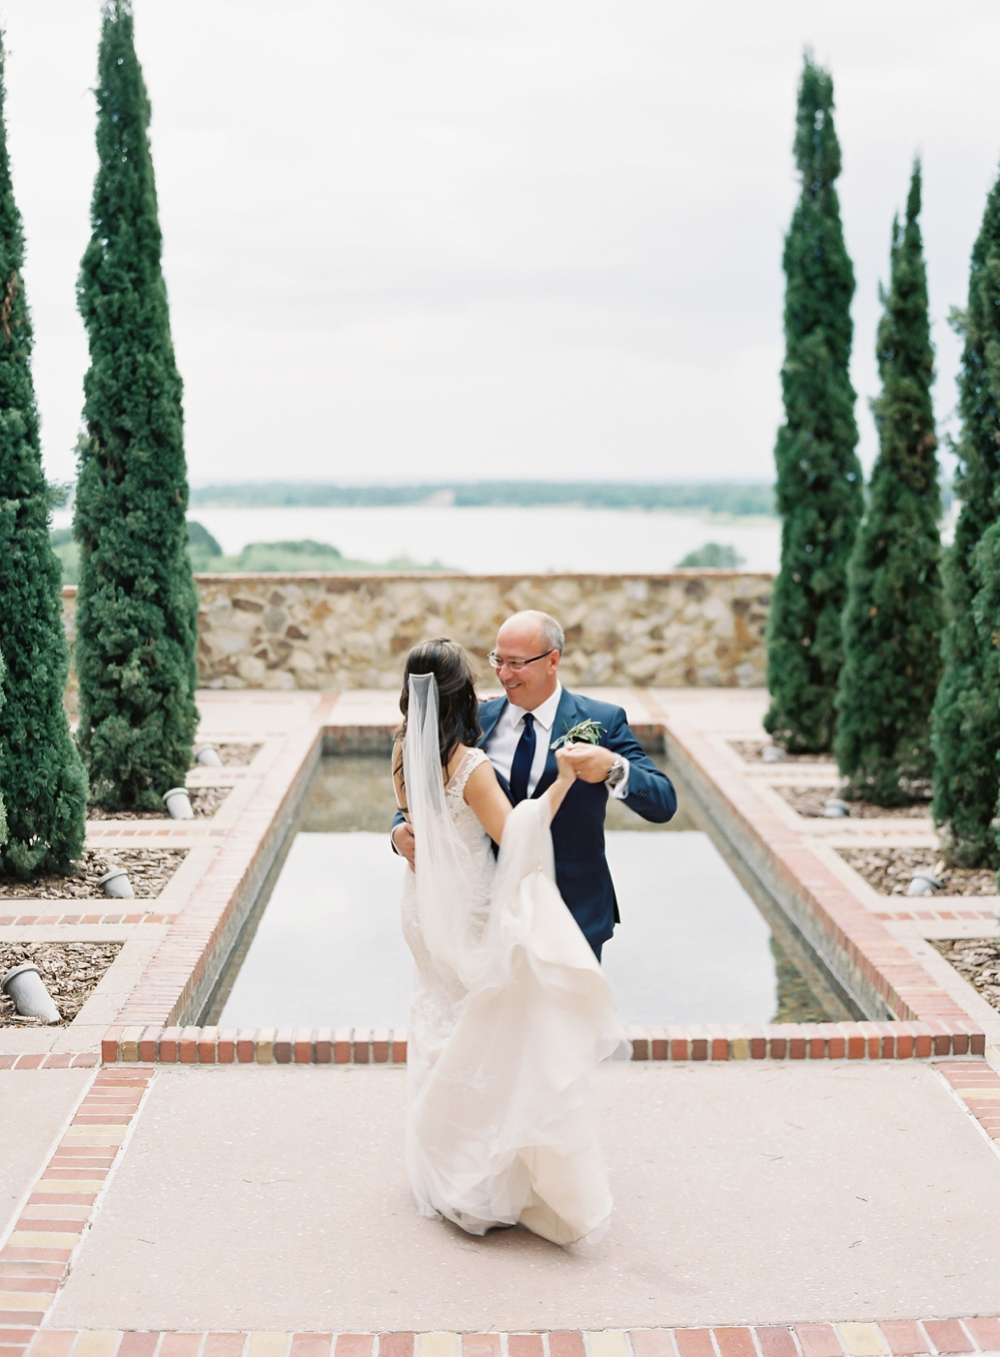 Vicki Grafton Photography - Fine Art Film Wedding Photographer - Bella Collina Wedding_0068.jpg